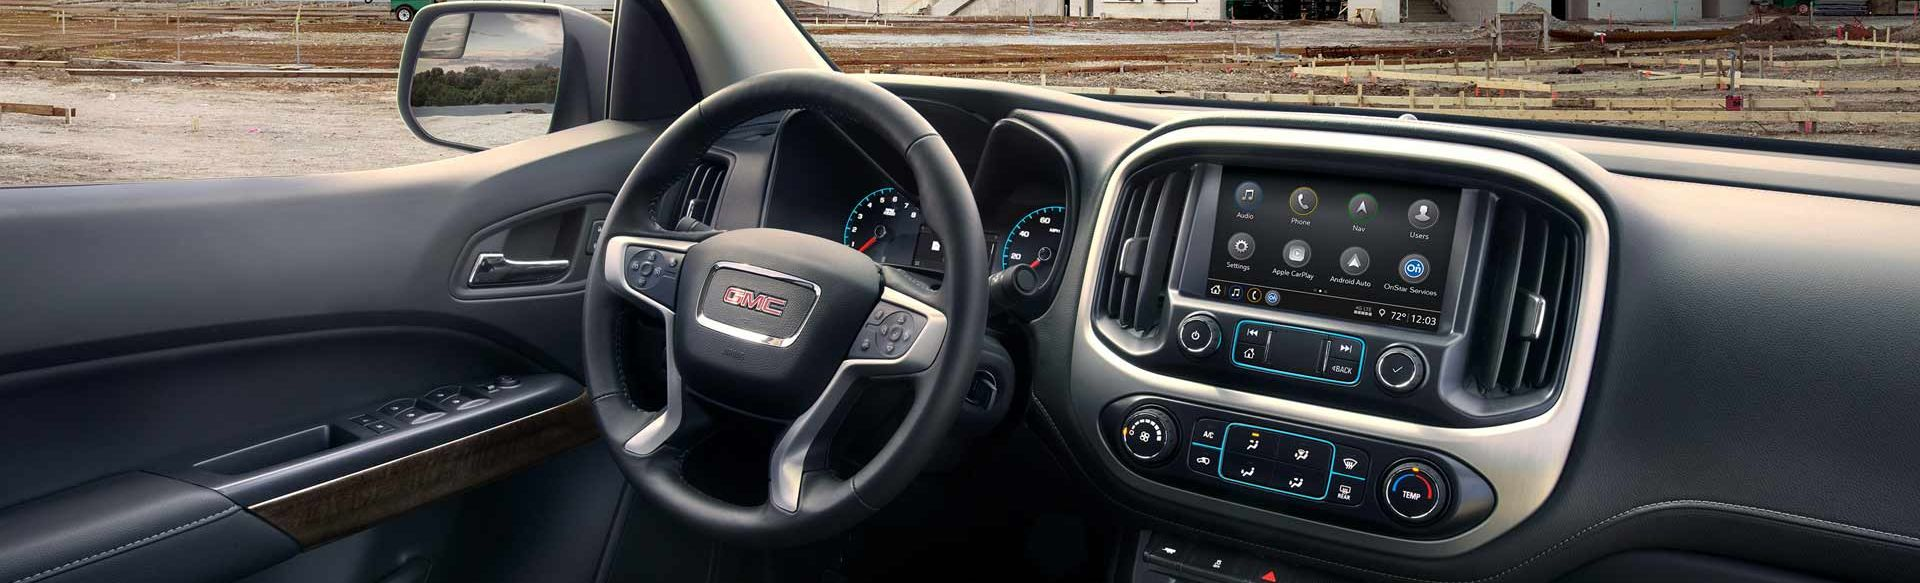 Advanced Cabin of the 2019 Canyon